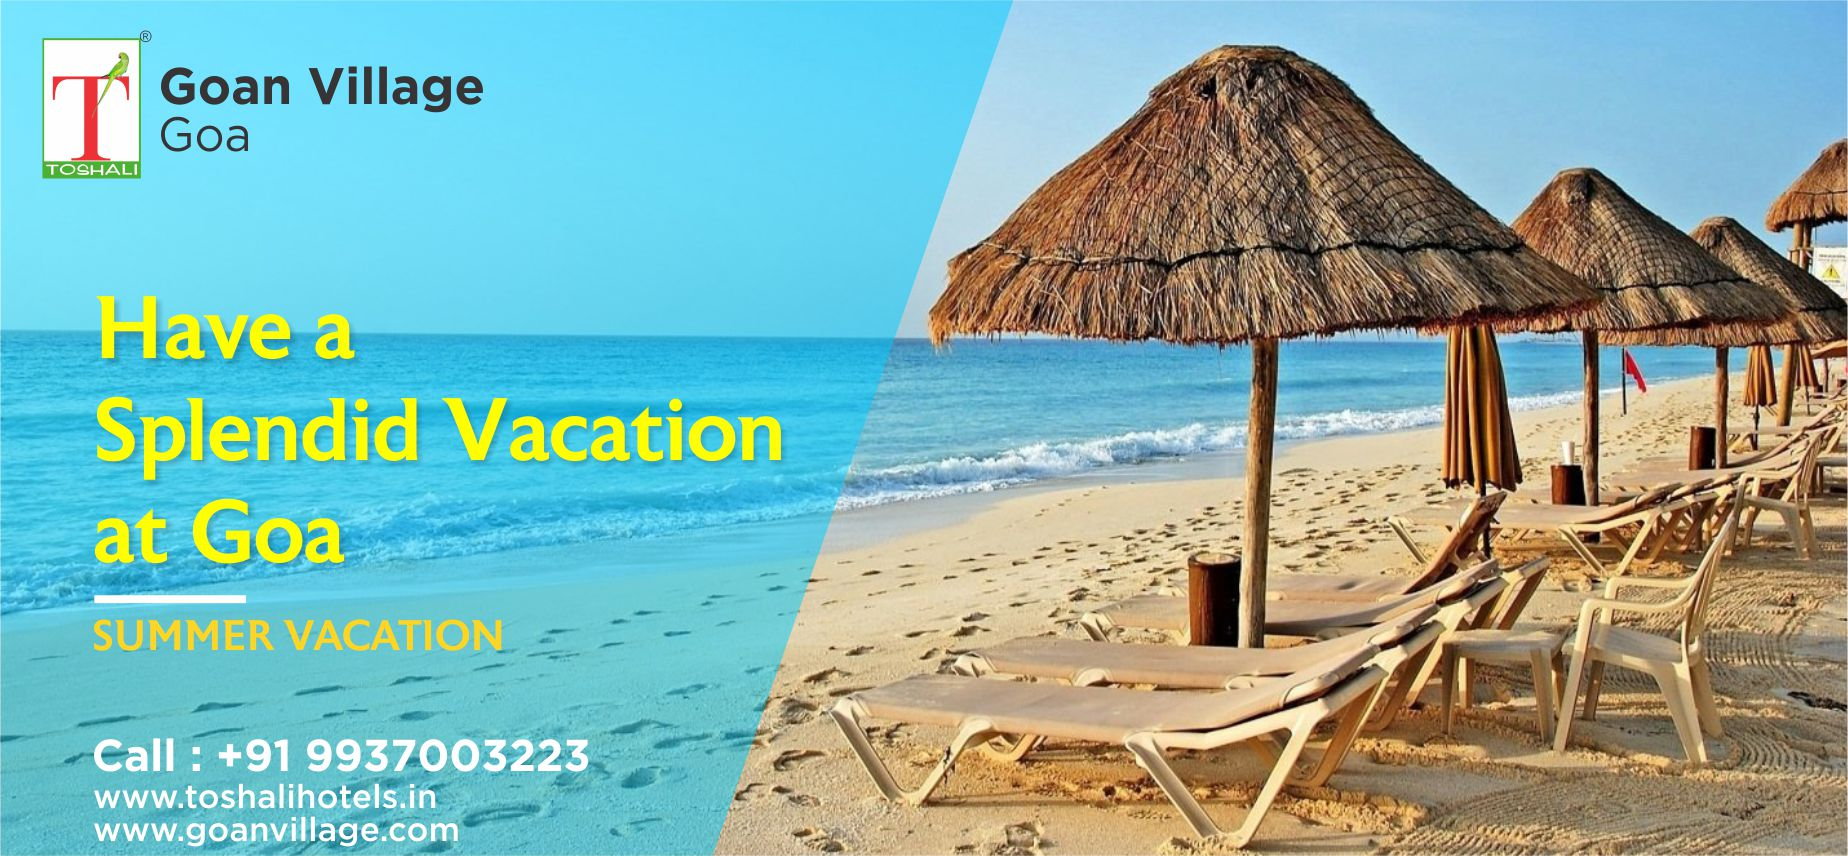 South Goa Hotels Offers Better Privacy Toshali Resorts Blog